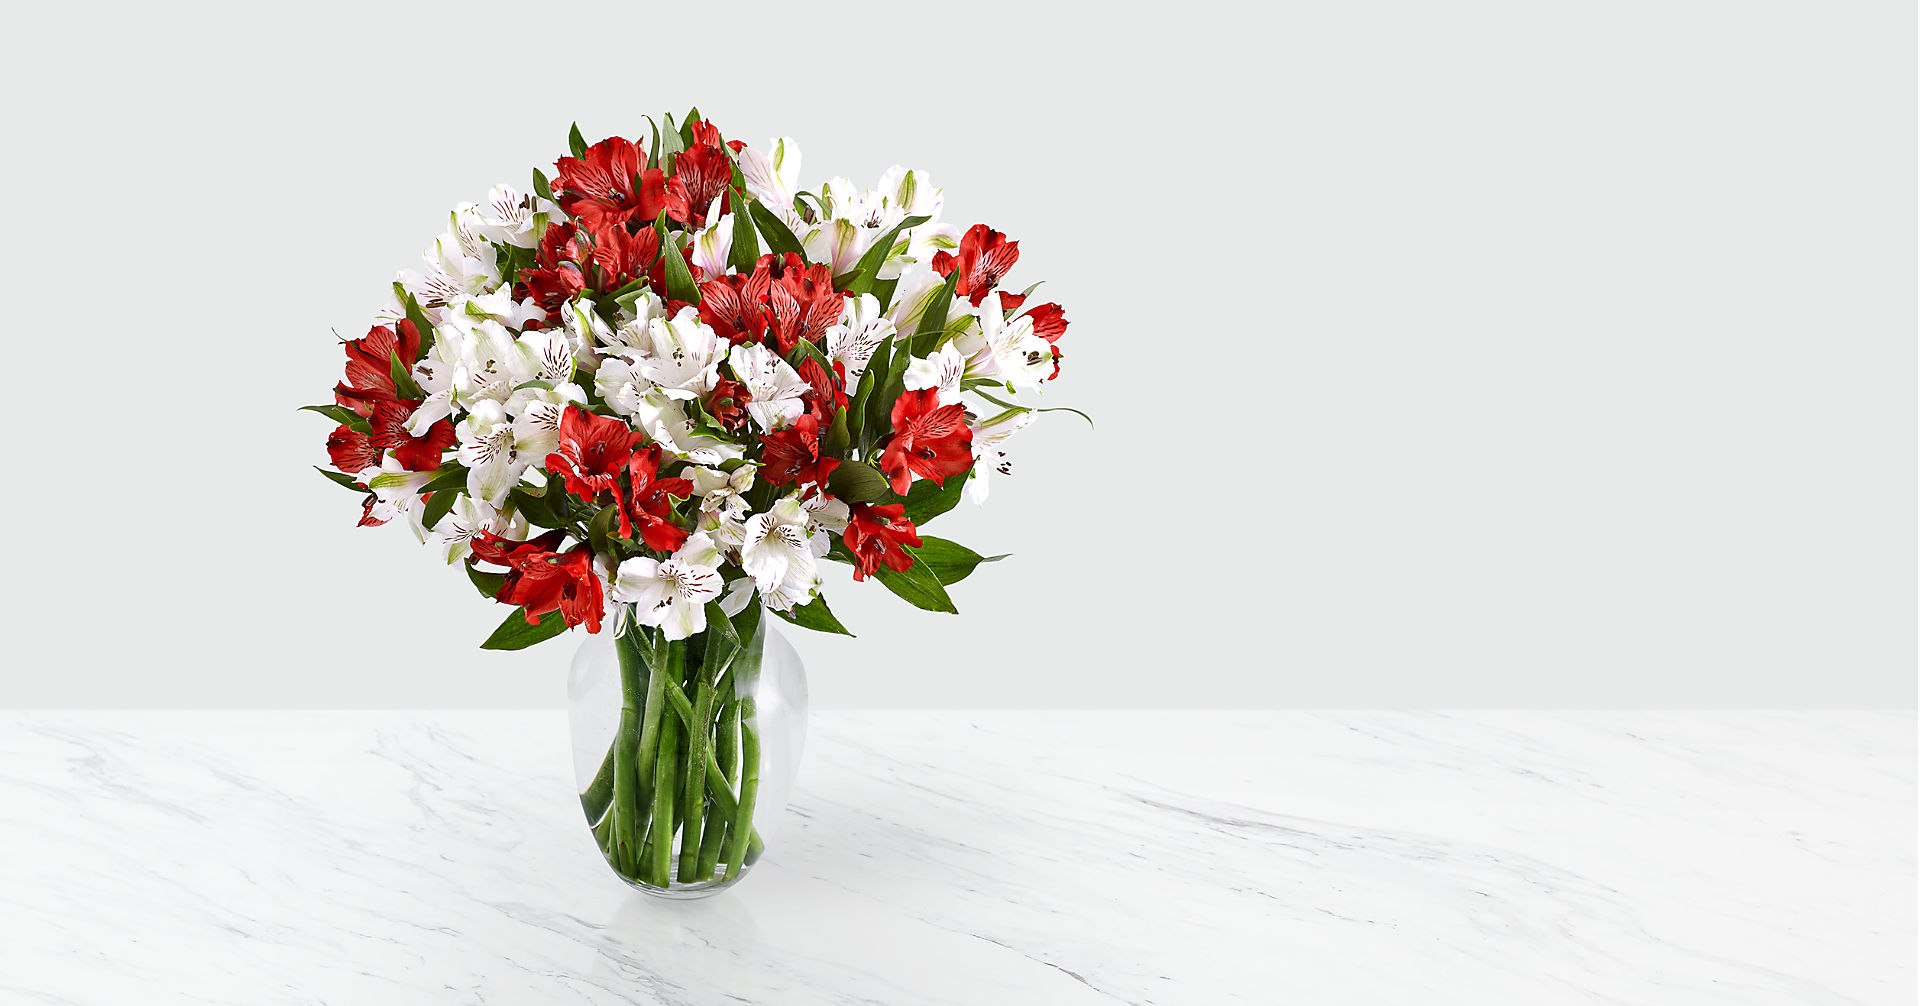 75 Blooms of Candy Cane Peruvian Lilies - Image 2 Of 2